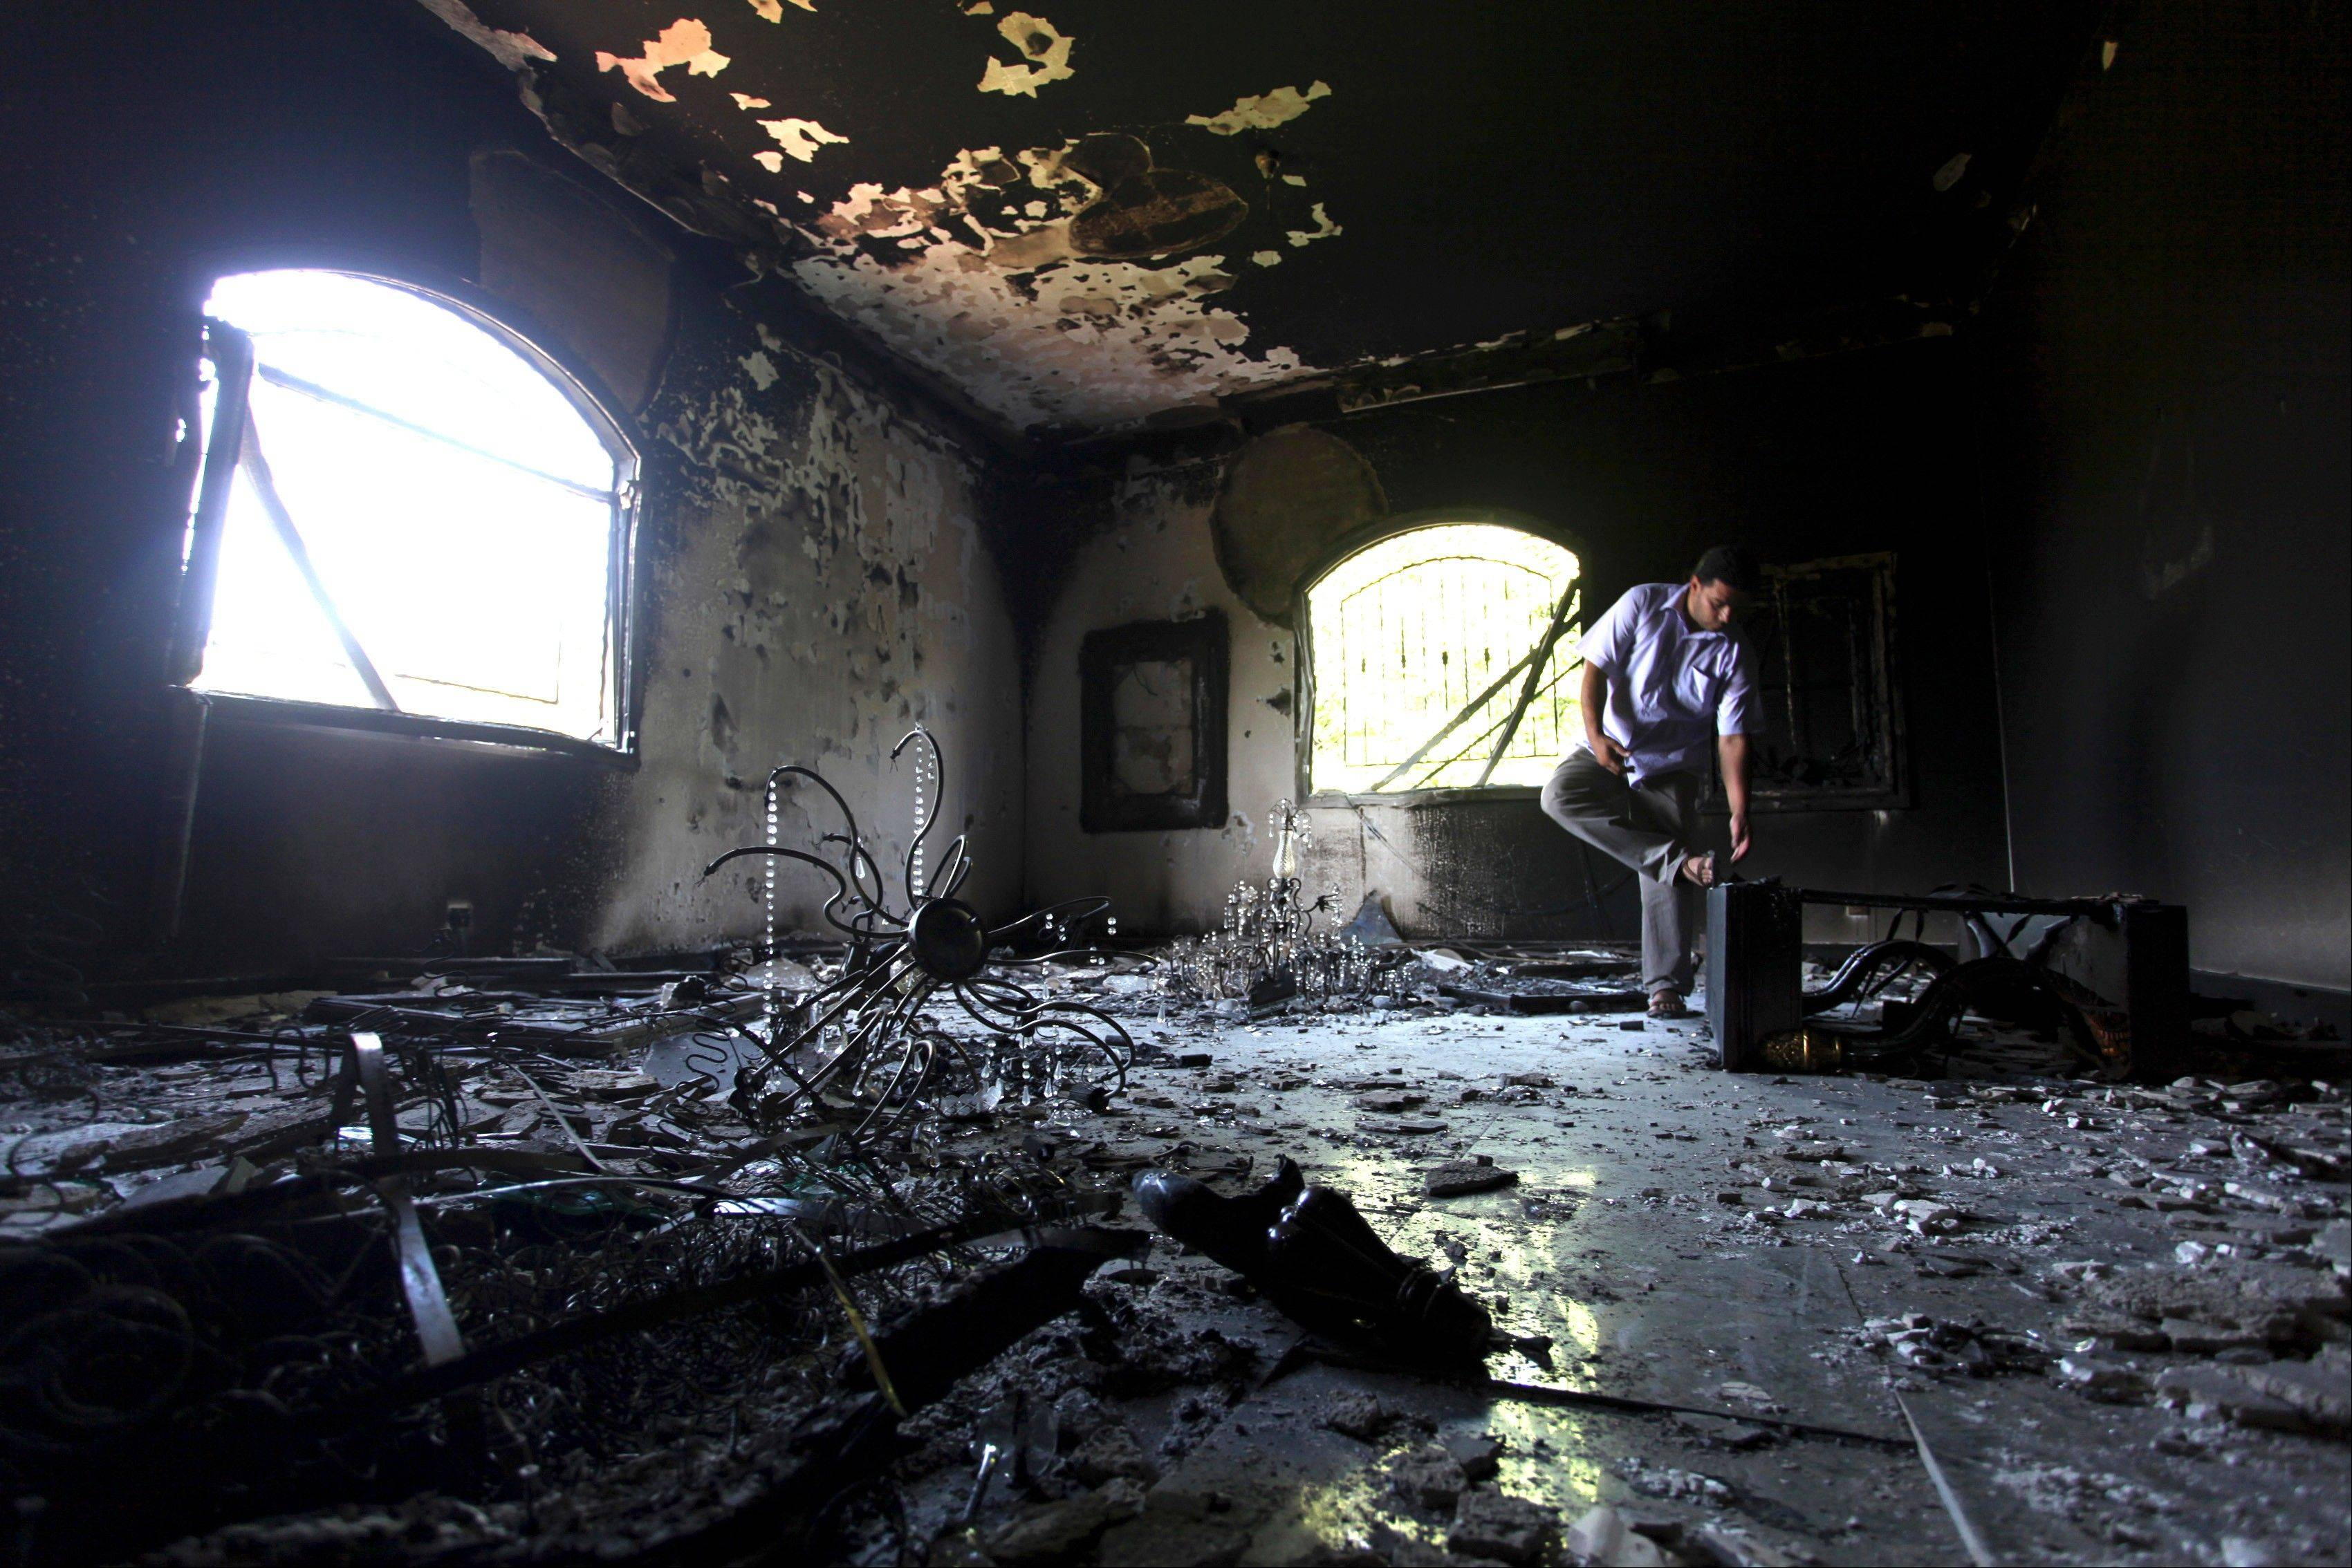 In this Sept. 13, 2012 file photo, a Libyan man investigates the inside of the U.S. Consulate, after an attack that killed four Americans, including Ambassador Chris Stevens on the night of Tuesday, Sept. 11, 2012, in Benghazi, Libya. U.S. officials tell The Associated Press that the CIA station chief in Libya reported to Washington within 24 hours that there was evidence it was carried out by militants.